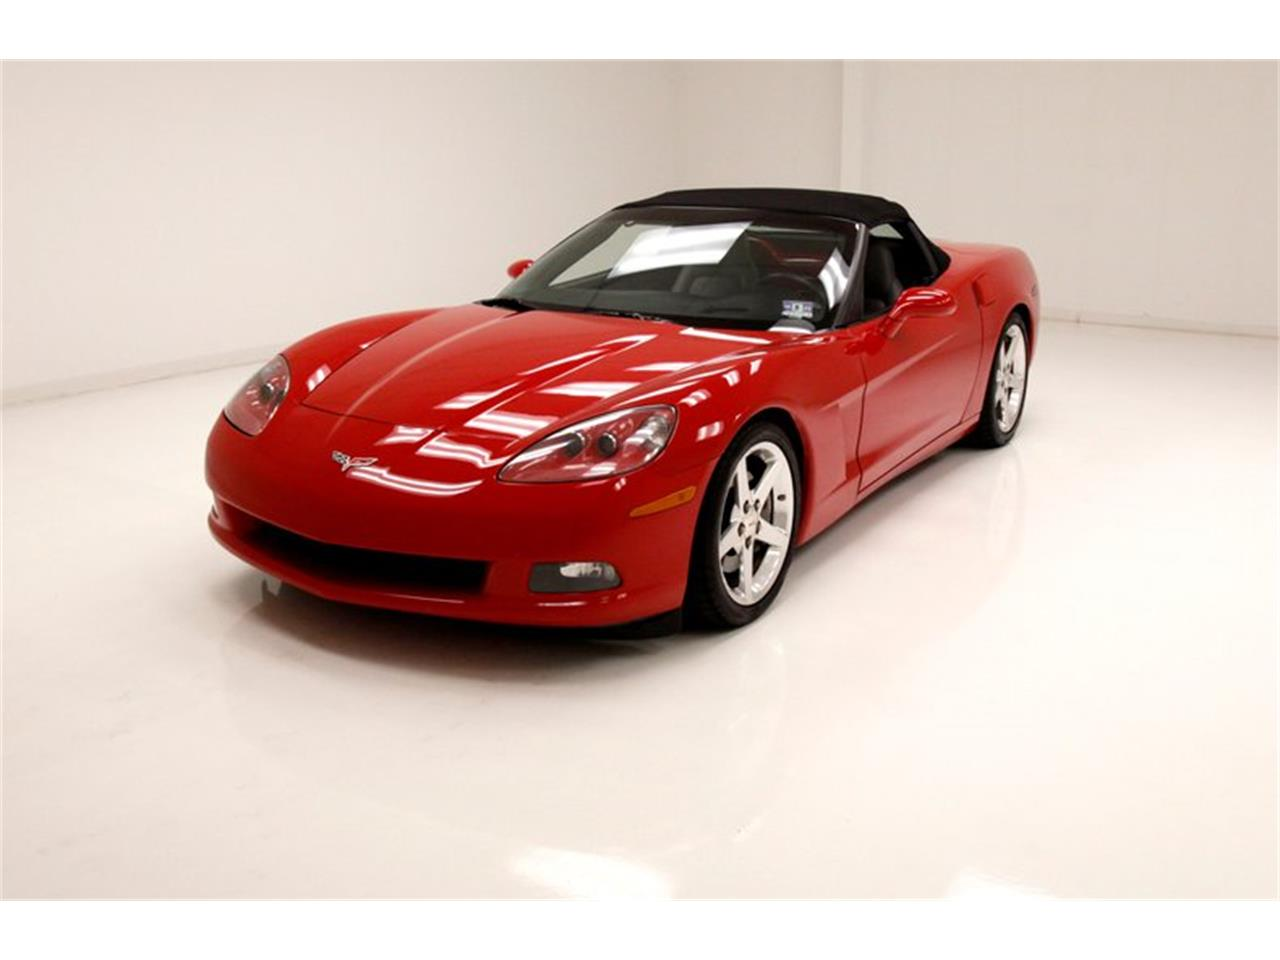 2005 Chevrolet Corvette (CC-1418422) for sale in Morgantown, Pennsylvania